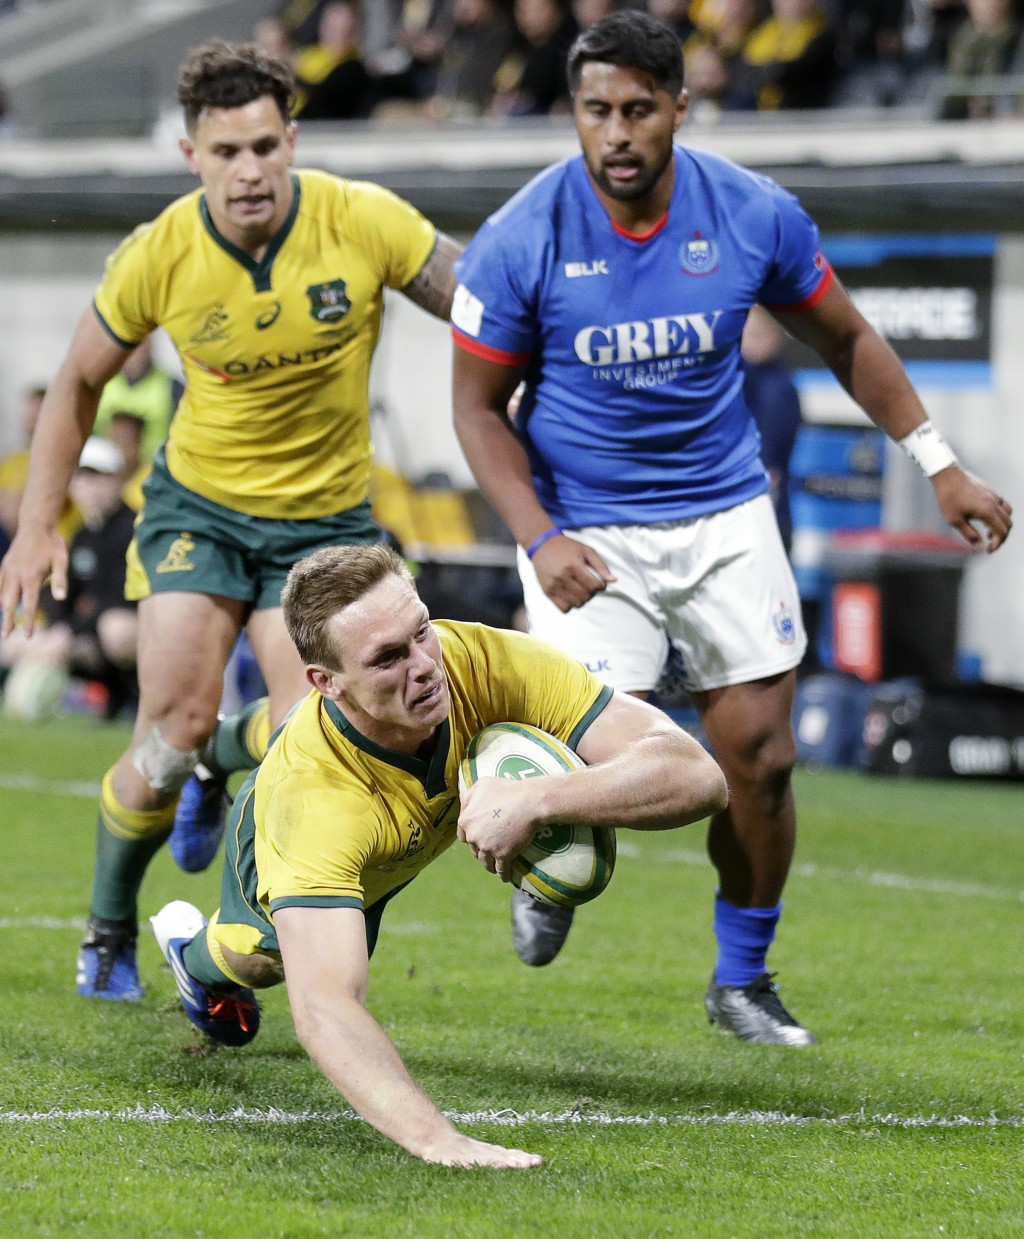 Australia's Dane Haylett-Petty, bottom, dives over to score a try against Samoa during their rugby union test match in Sydney, Saturday, Sept. 7, 2019